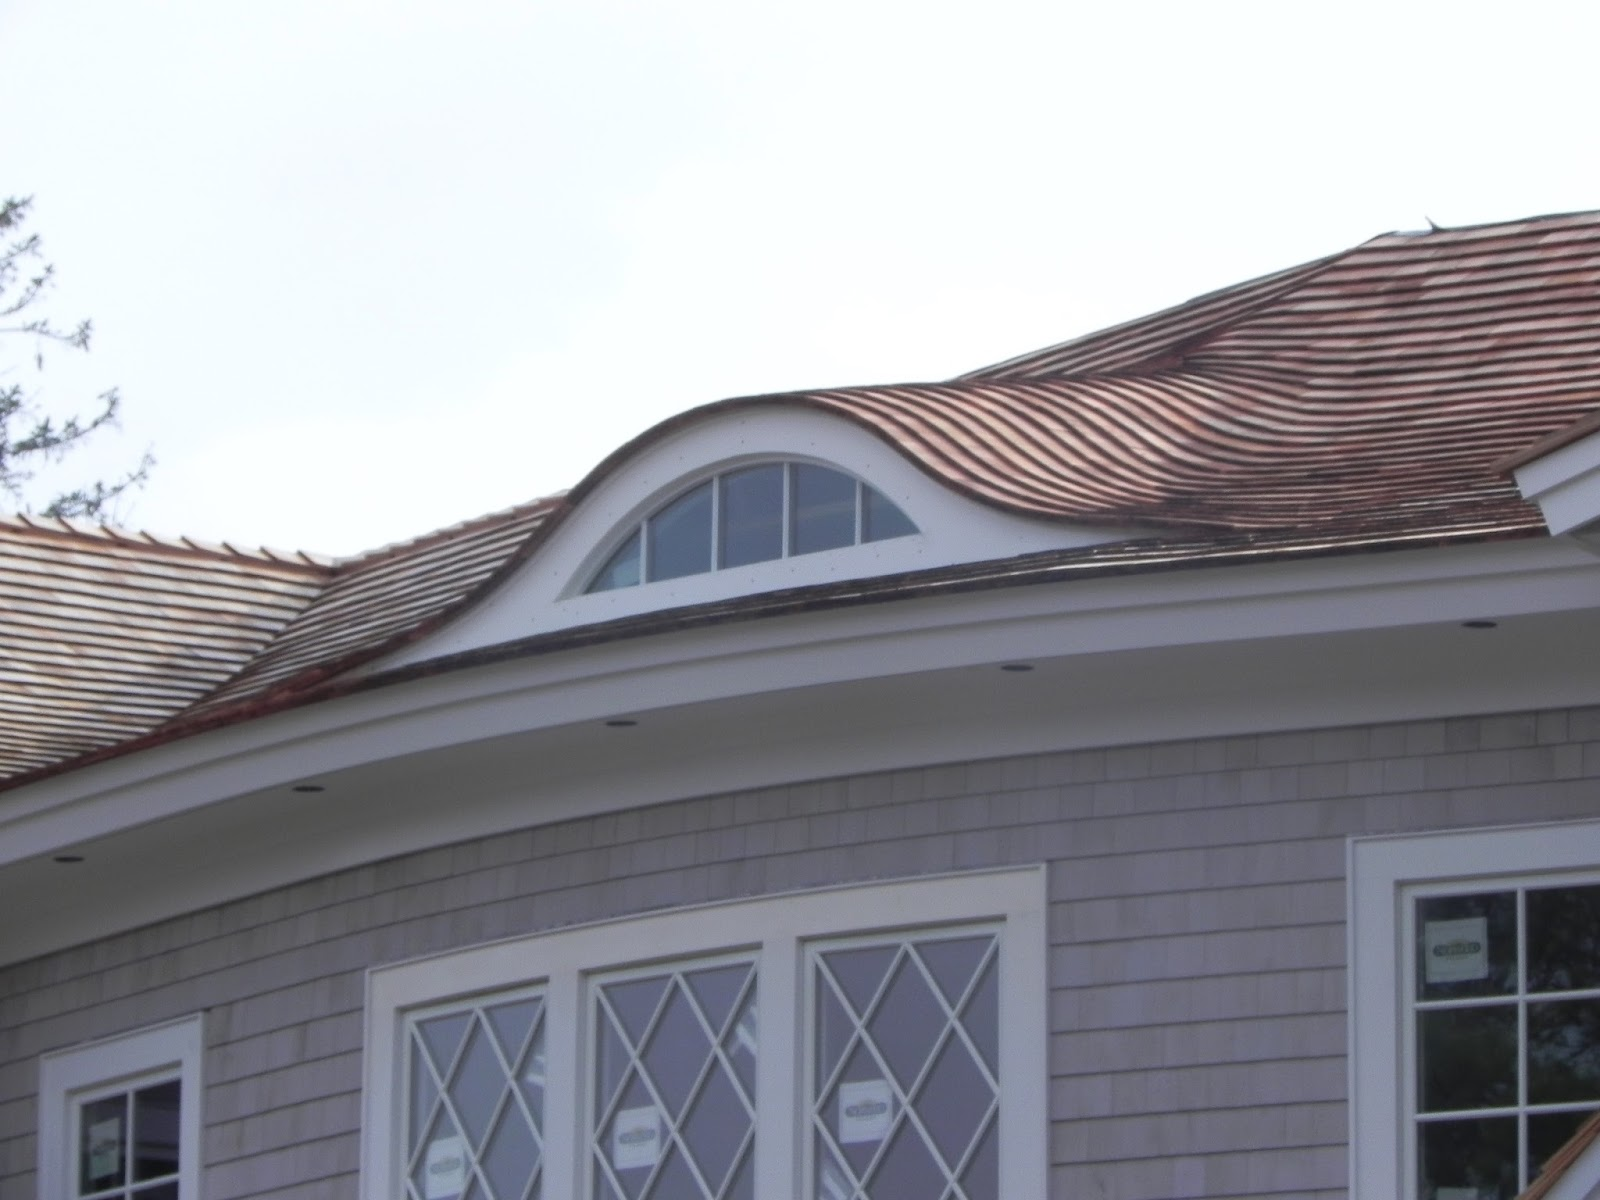 Eyebrow Window Dormer